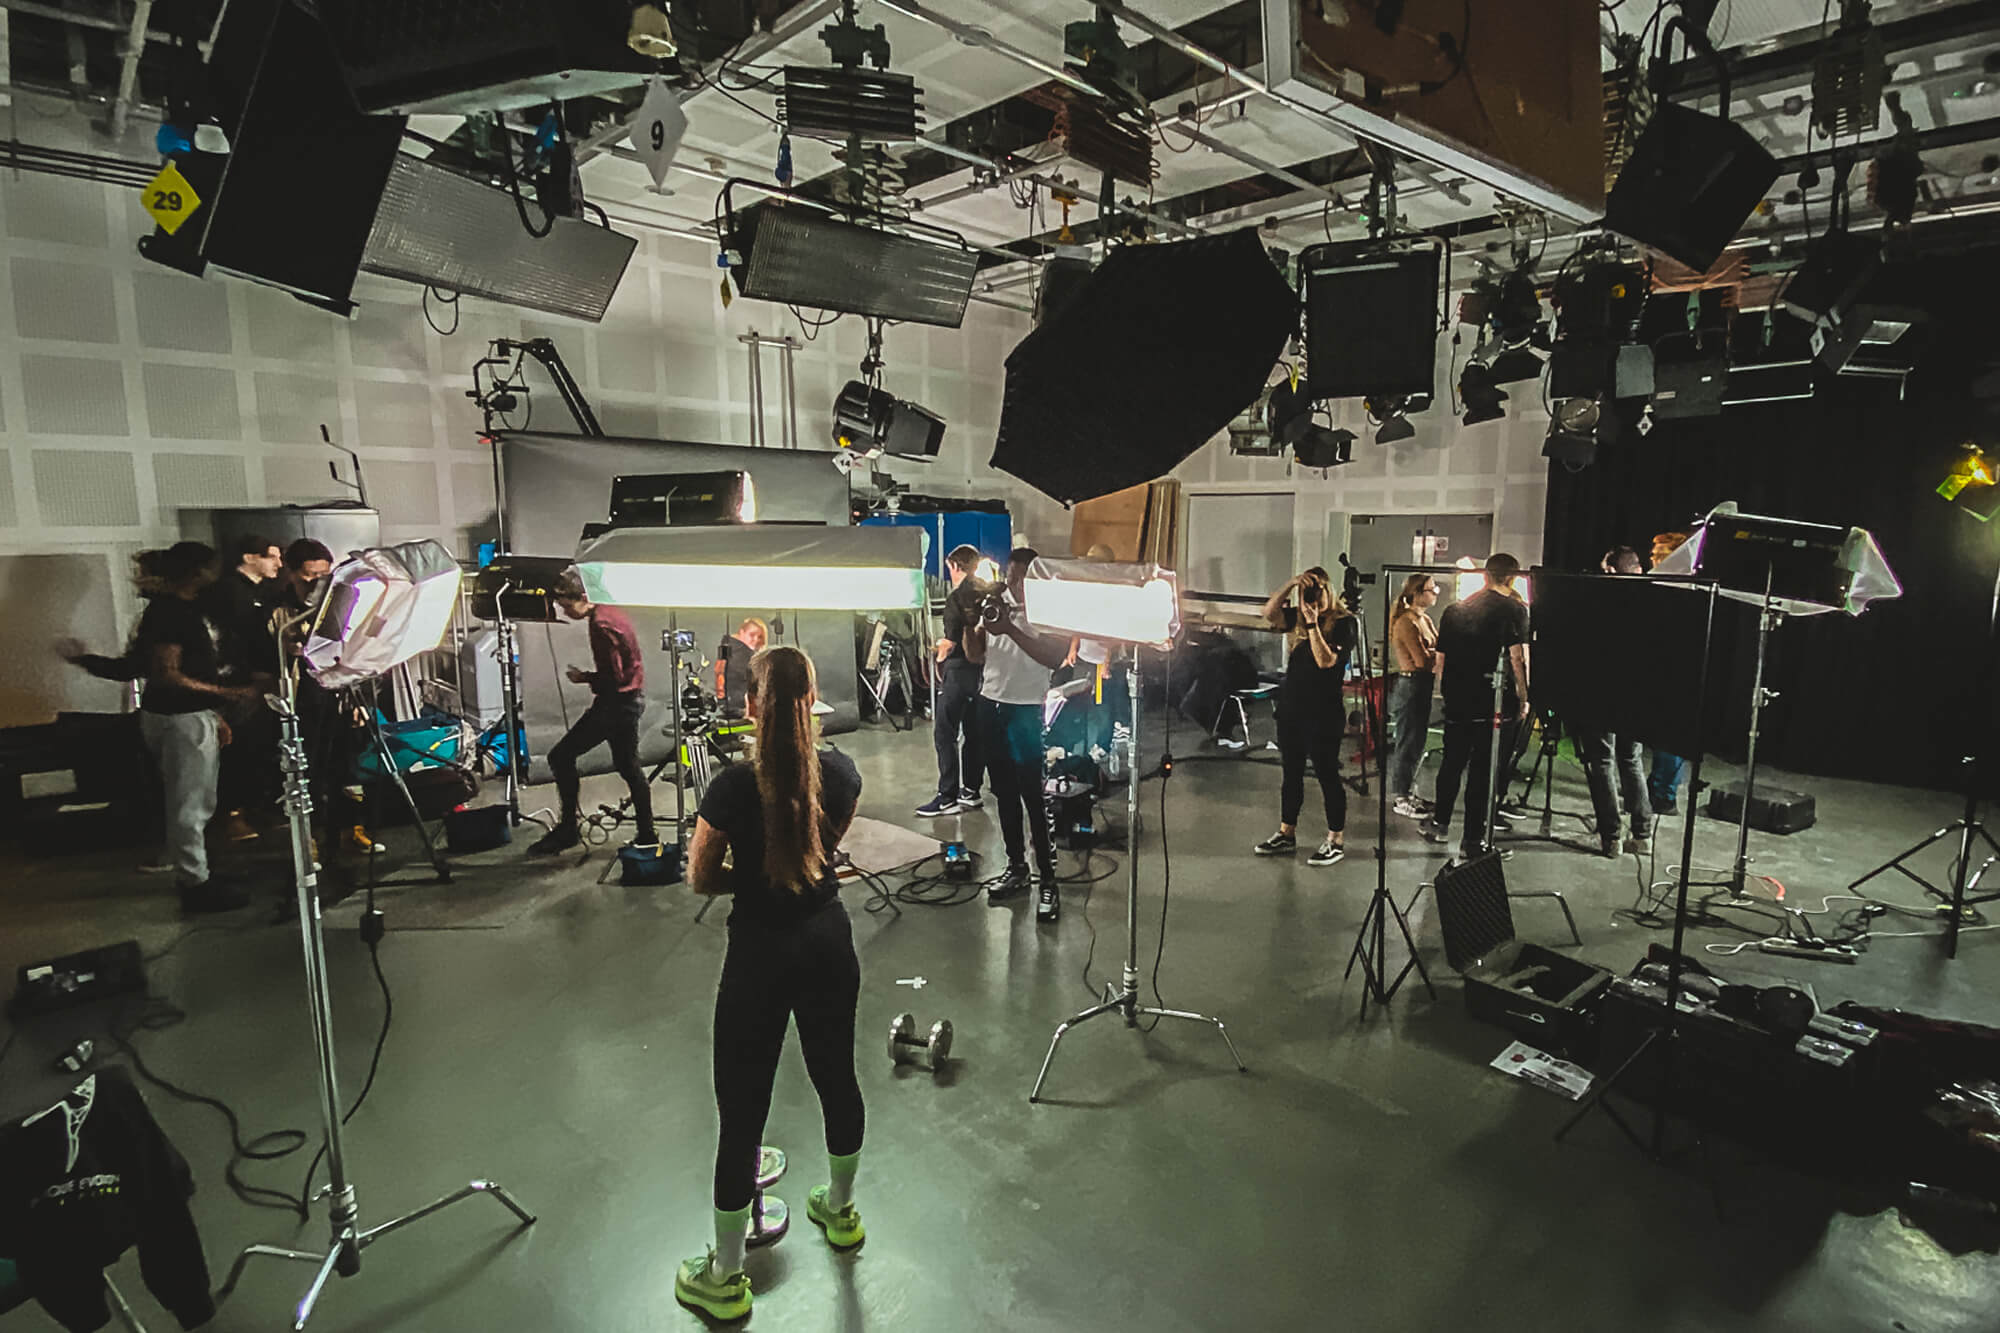 Models and camera operators fill a busy camera and lighting studio